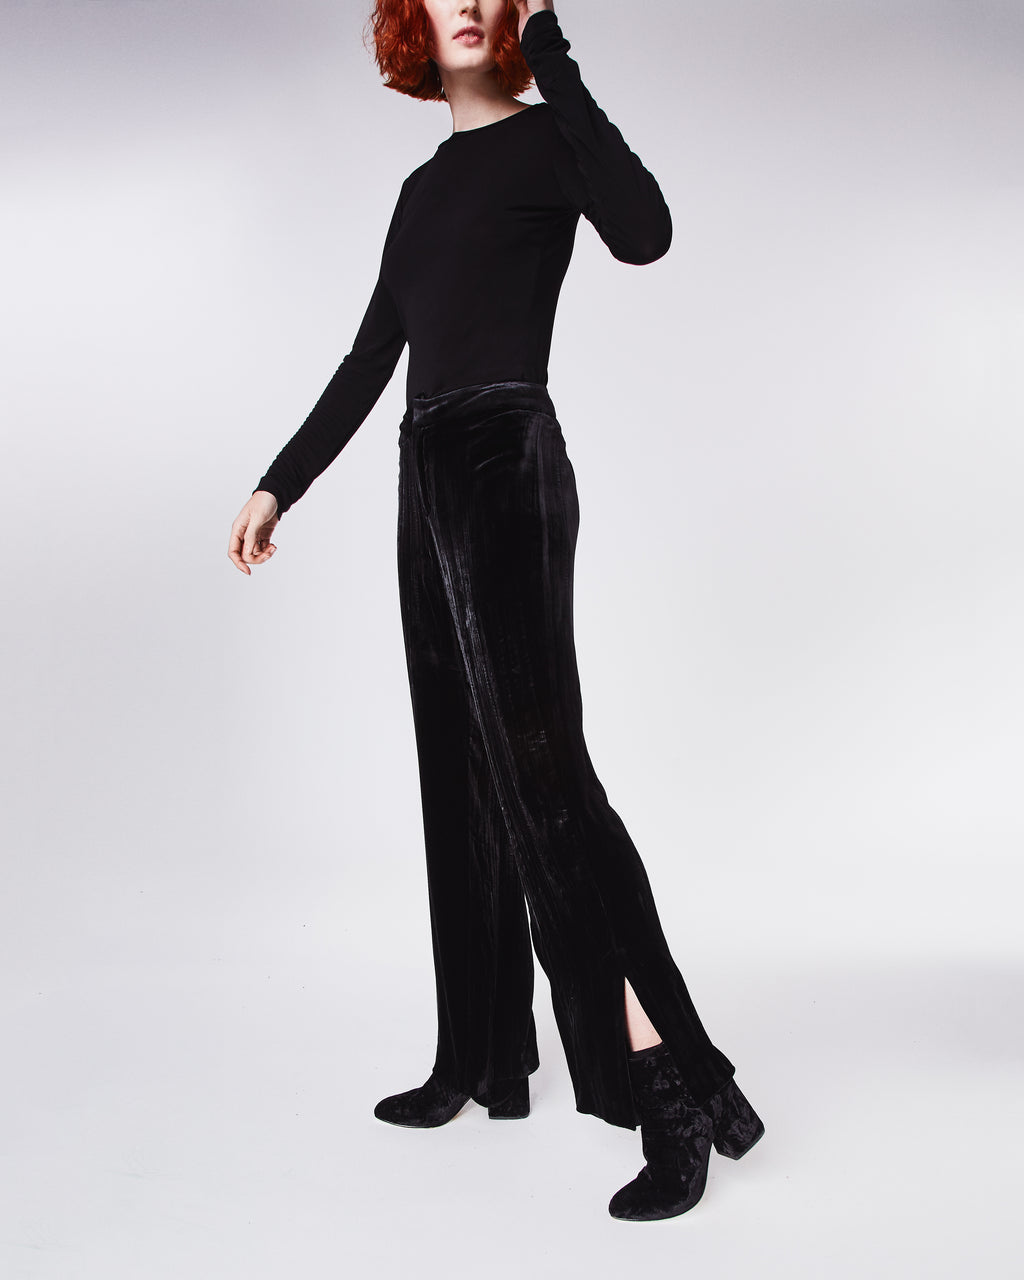 BM10197 - CRINKLED VELVET PANT - bottoms - pants - Slight cropped, these high waisted pants are made in a soft velvet and feature side slits at the ankles. Unlined.